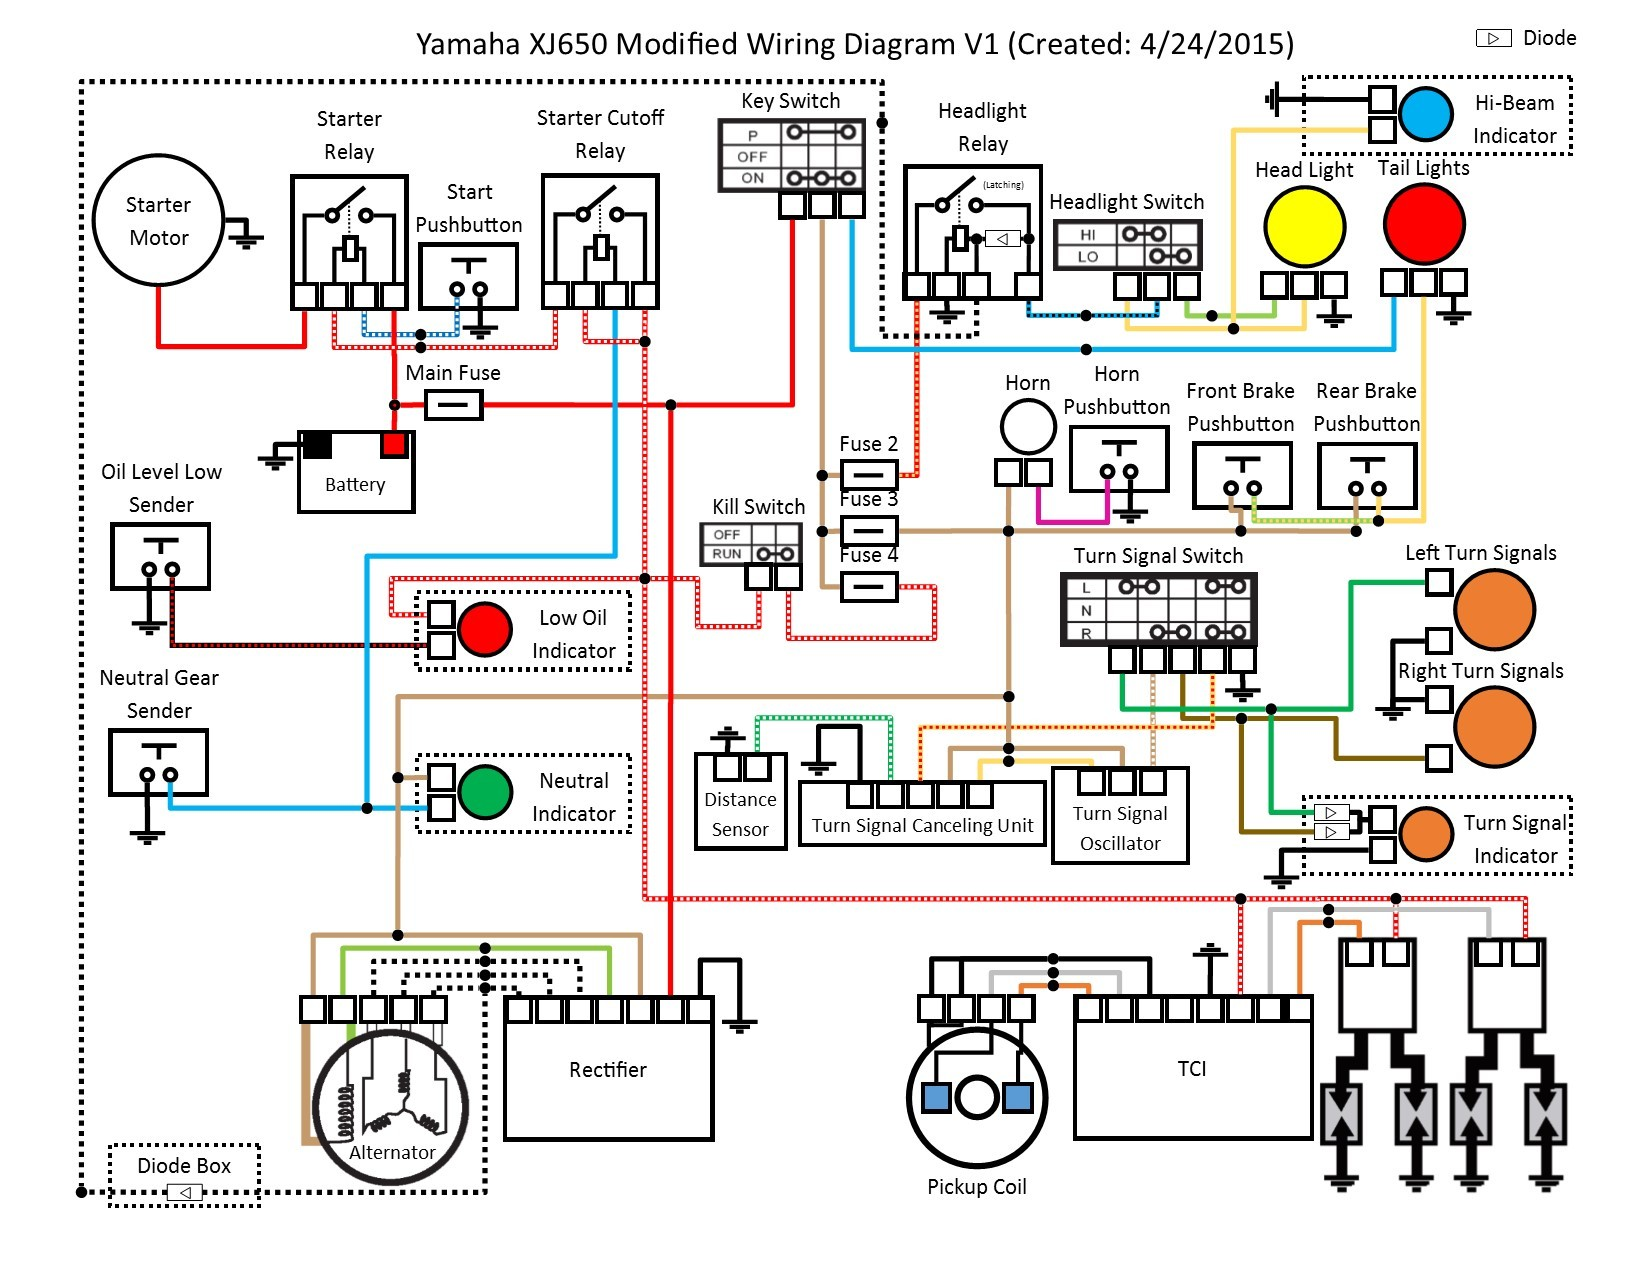 Motorcycle brake light switch wiring diagram awesome basic motorcycle brake light switch wiring diagram awesome basic motorcycle wiring diagram gallery everything you of motorcycle asfbconference2016 Image collections